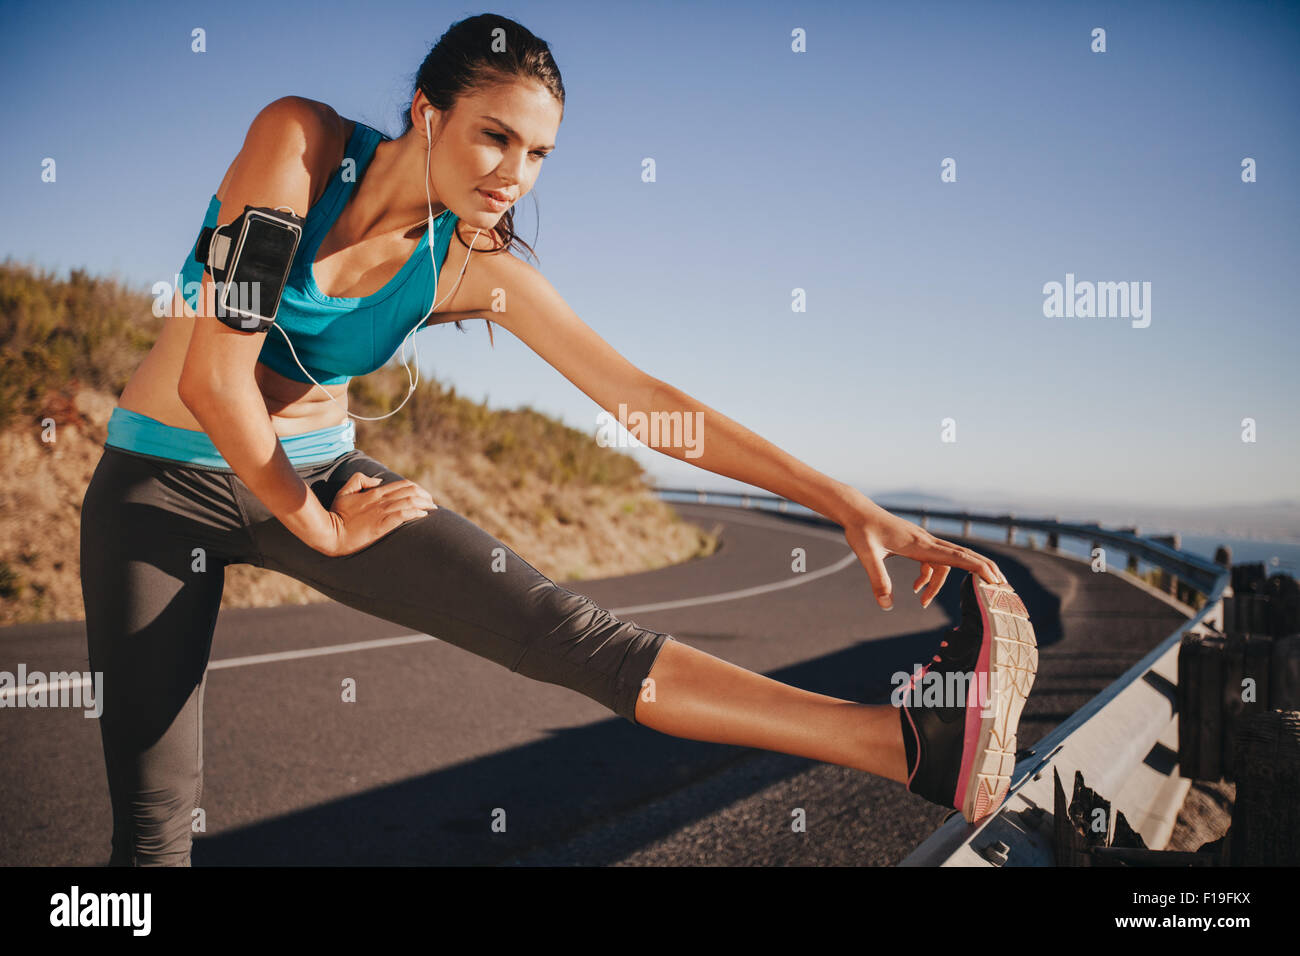 Determined young woman warming up before a run. Female athlete stretching her leg on road guardrail in morning. - Stock Image